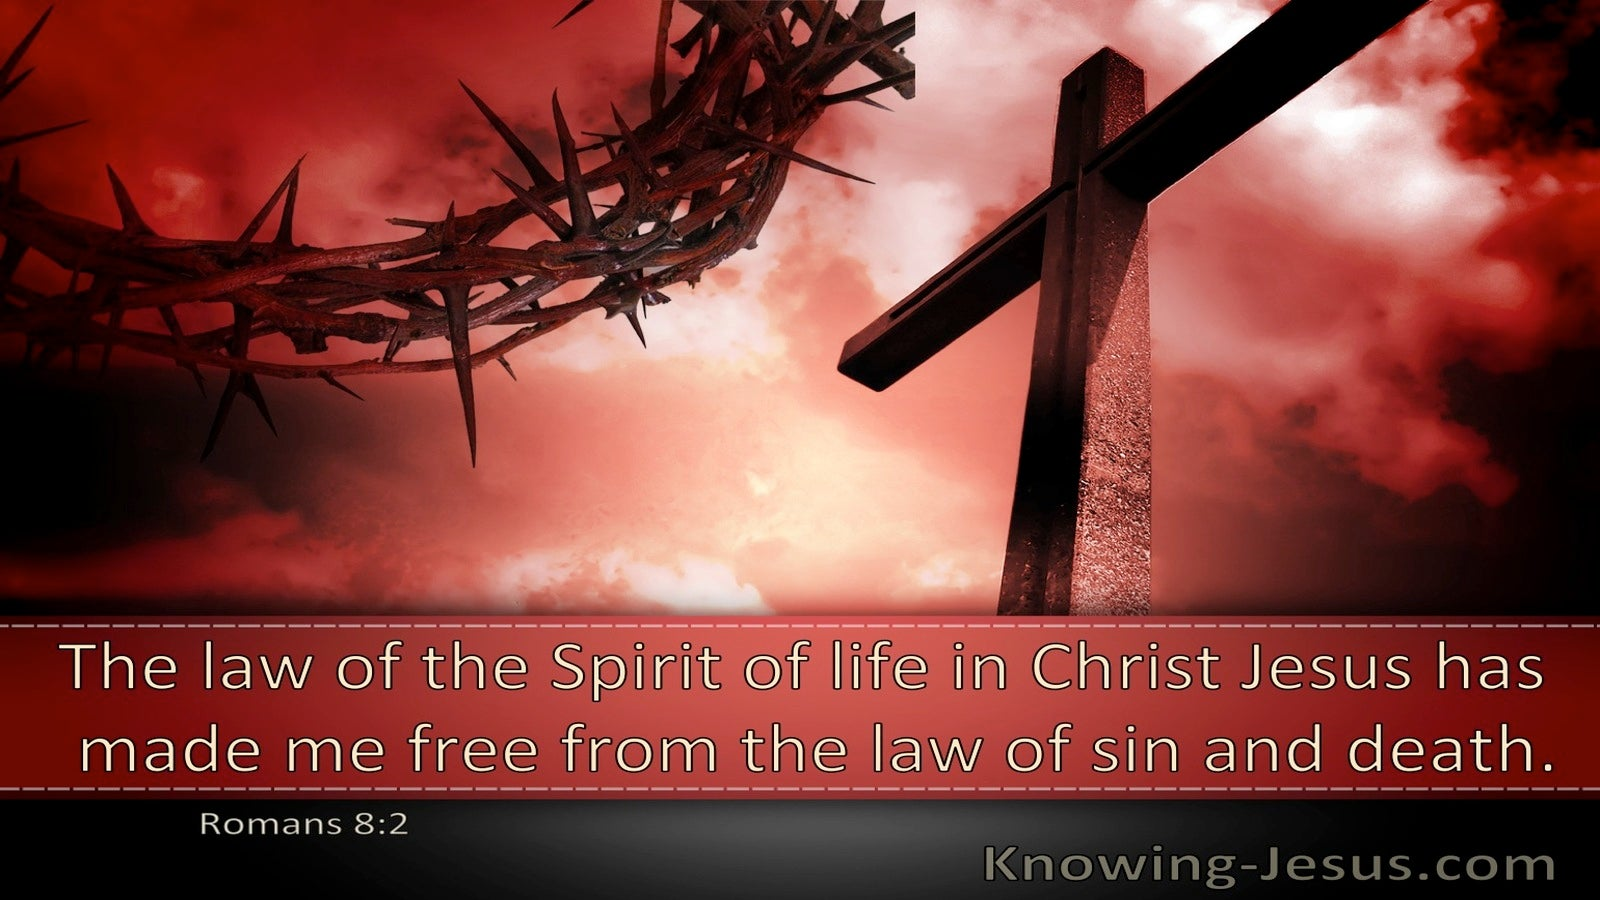 Romans 8:2 The Law Of The Spirit Of Life In Christ Jesus Has Made Me Free (windows)01:13